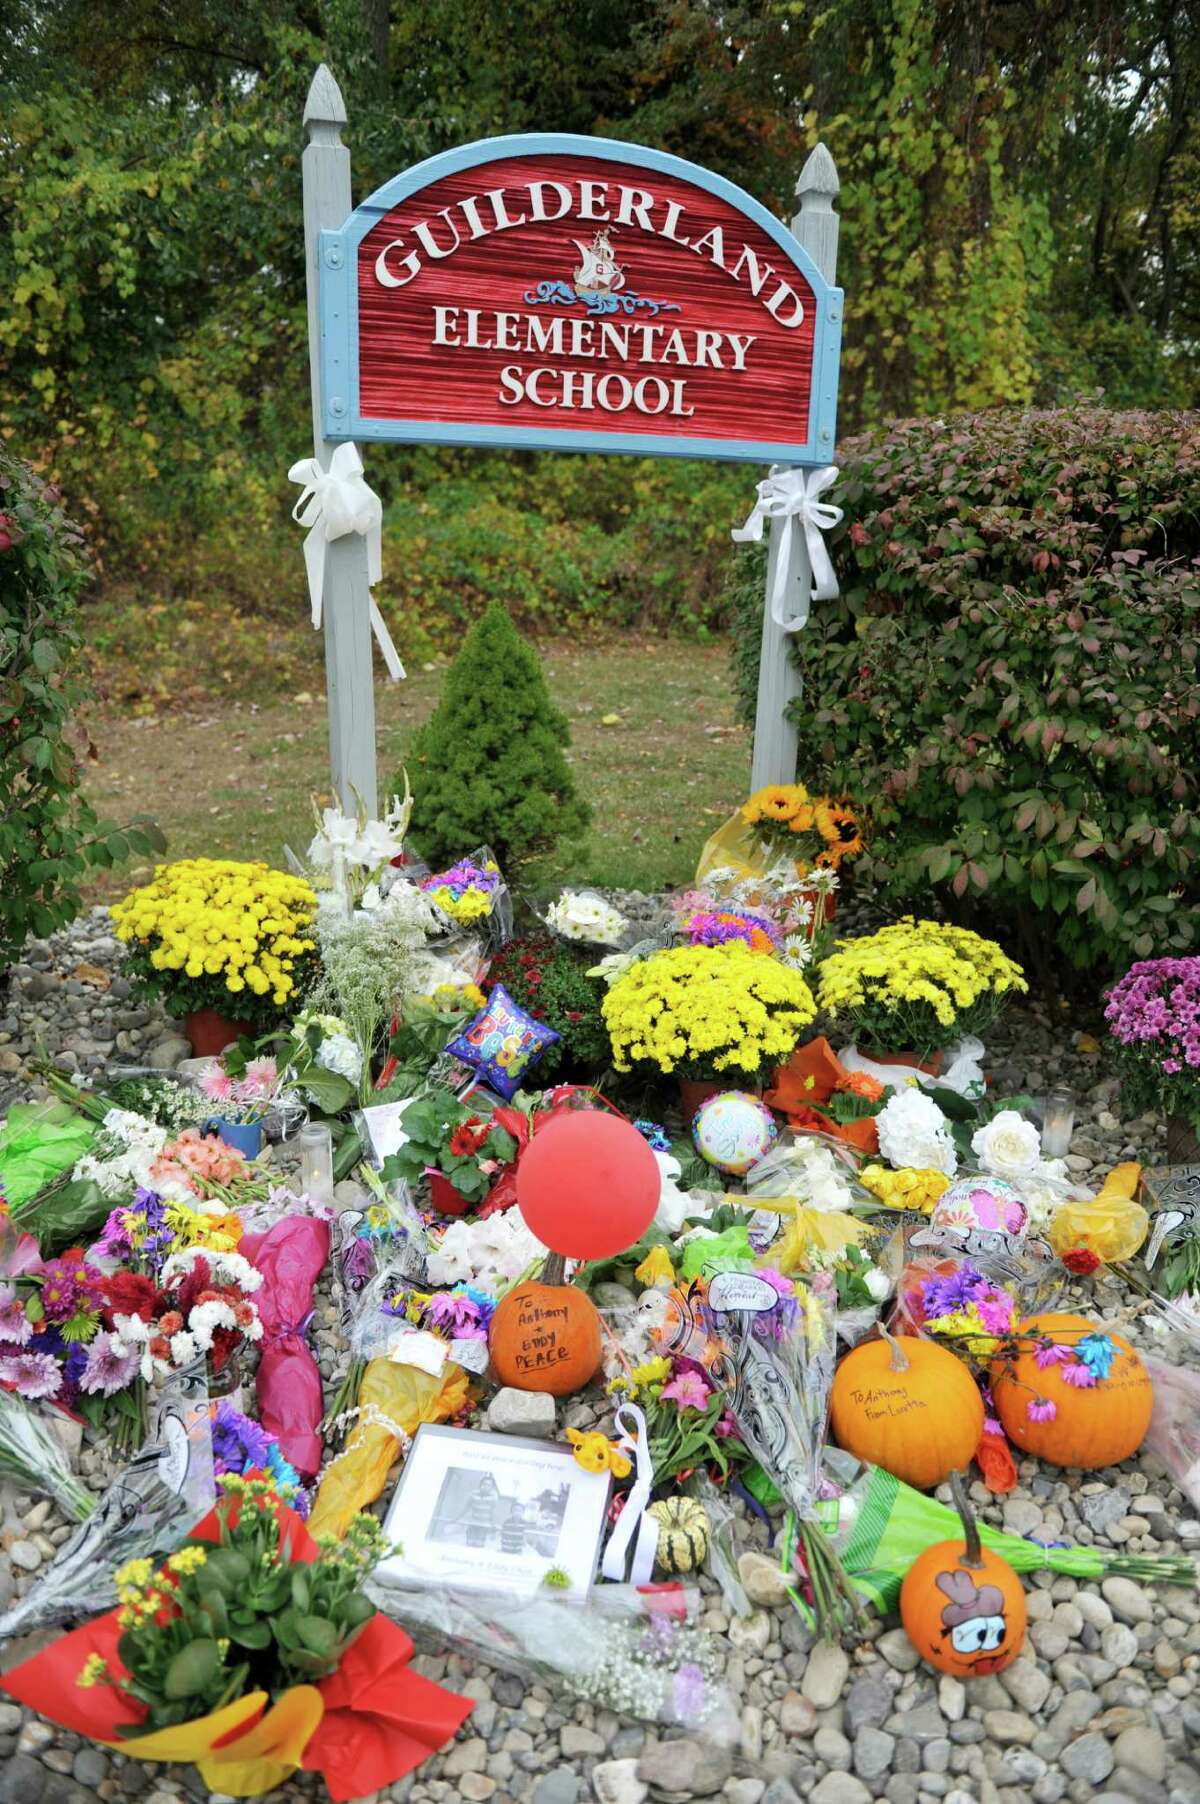 Flowers and other items have been left at the entrance to Guilderland Elementary School, seen here on Monday, Oct. 13, 2014, in Guilderland, N.Y. The two boys, Anthony, 10, and Eddy, 7, were found dead along with their parents Jin Chen, and Hai Yan Li last week in their home at 1846 Western Ave. in Guilderland, N.Y. The two boys went to school at Guilderland Elementary School. (Paul Buckowski / Times Union)